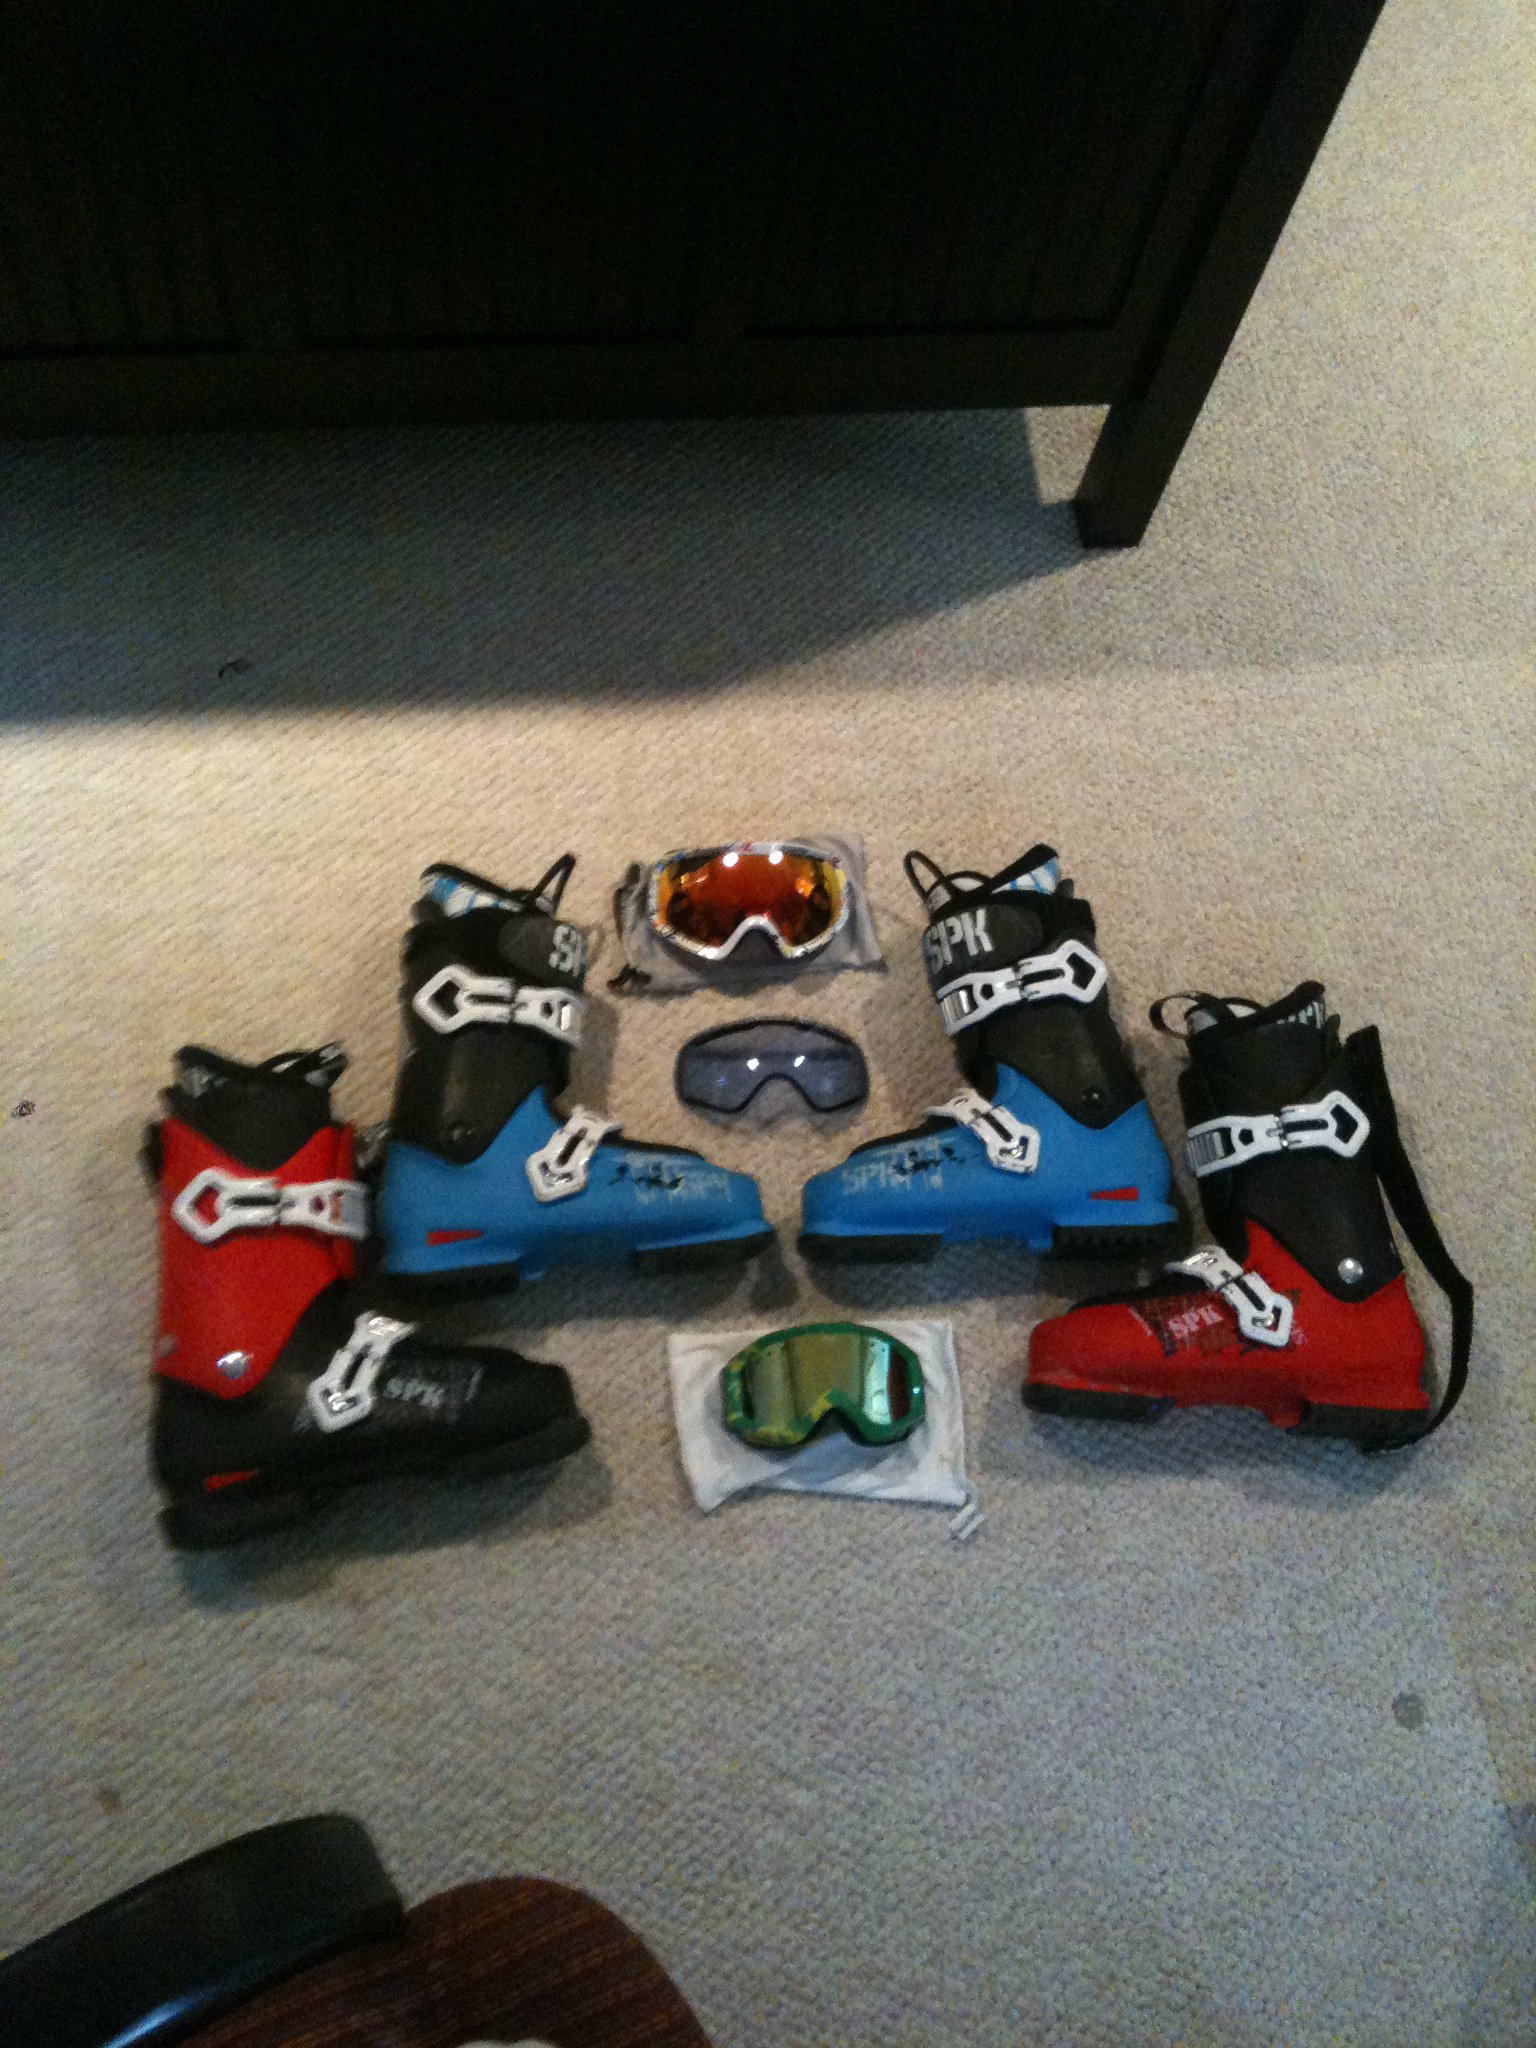 Stuff i have for sale